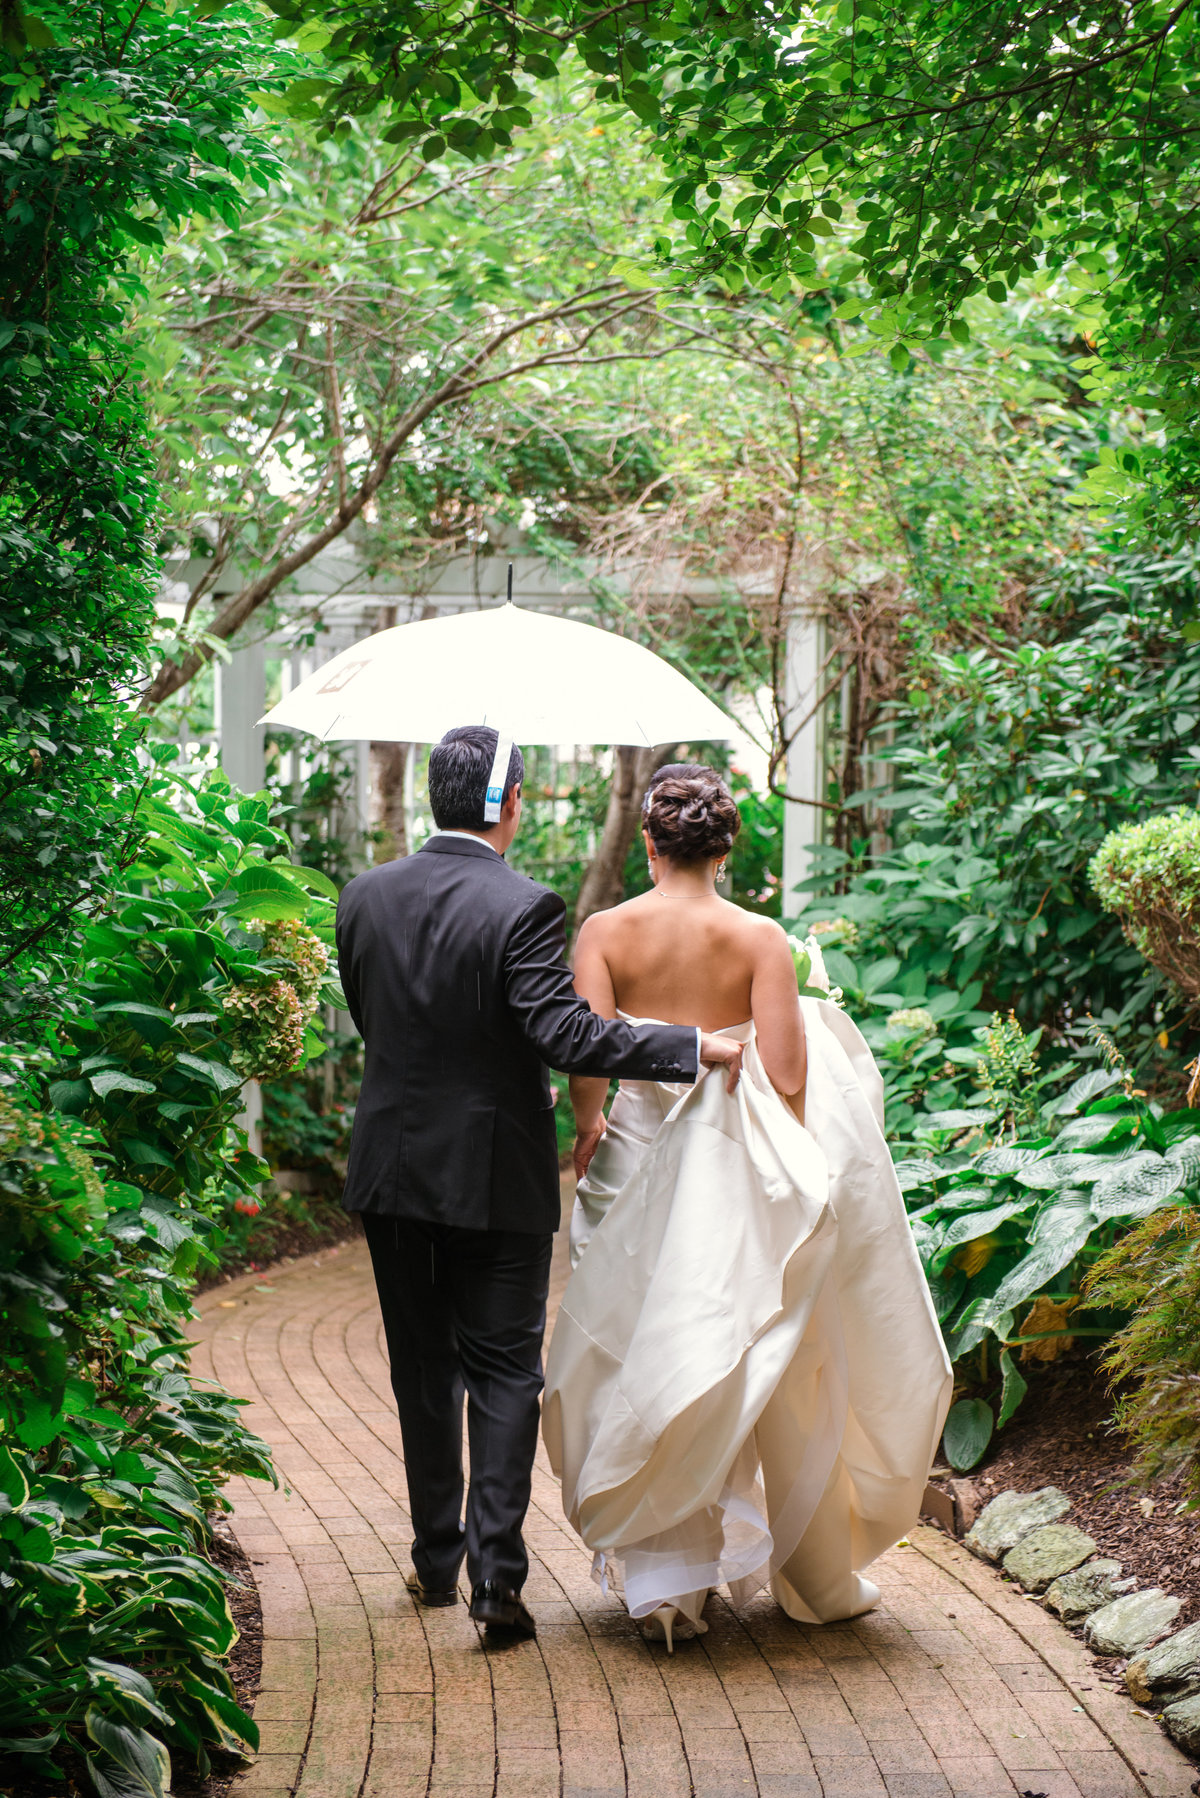 photo of groom holding umbrella and walking with his bride outside The Garden City Hotel